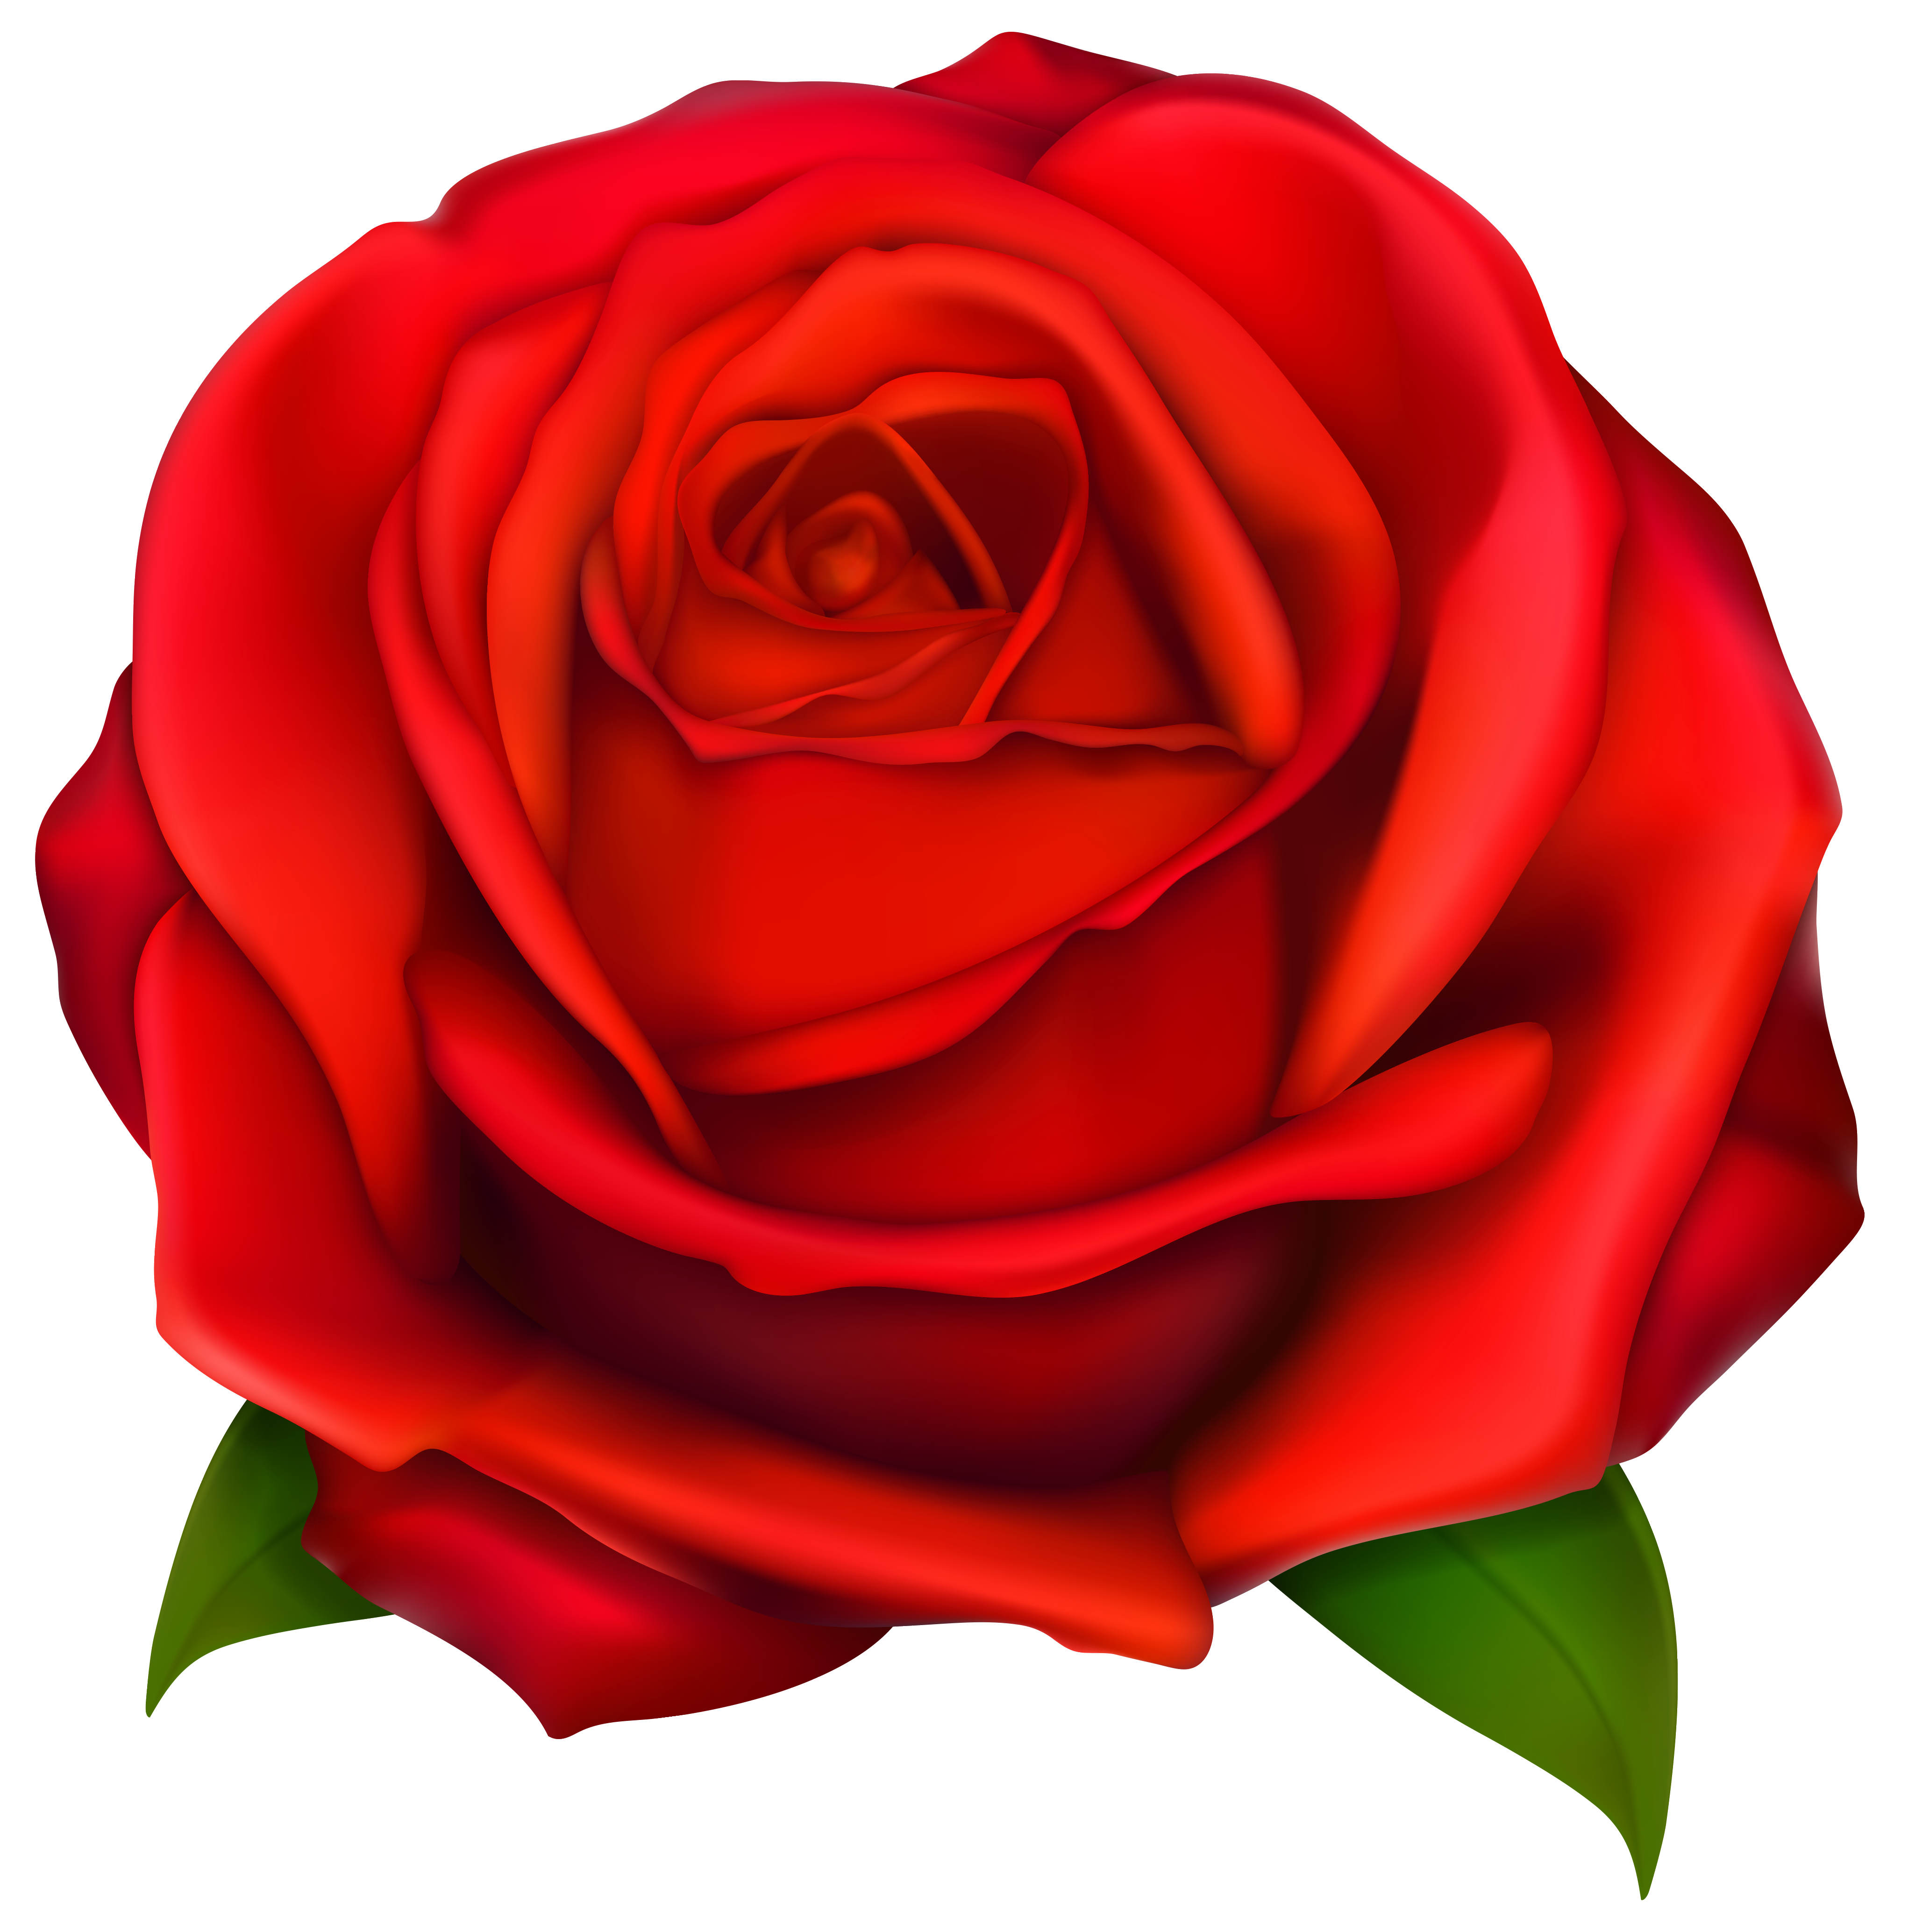 Image of Clip Art Red Rose 7092, Red Roses Clip Art